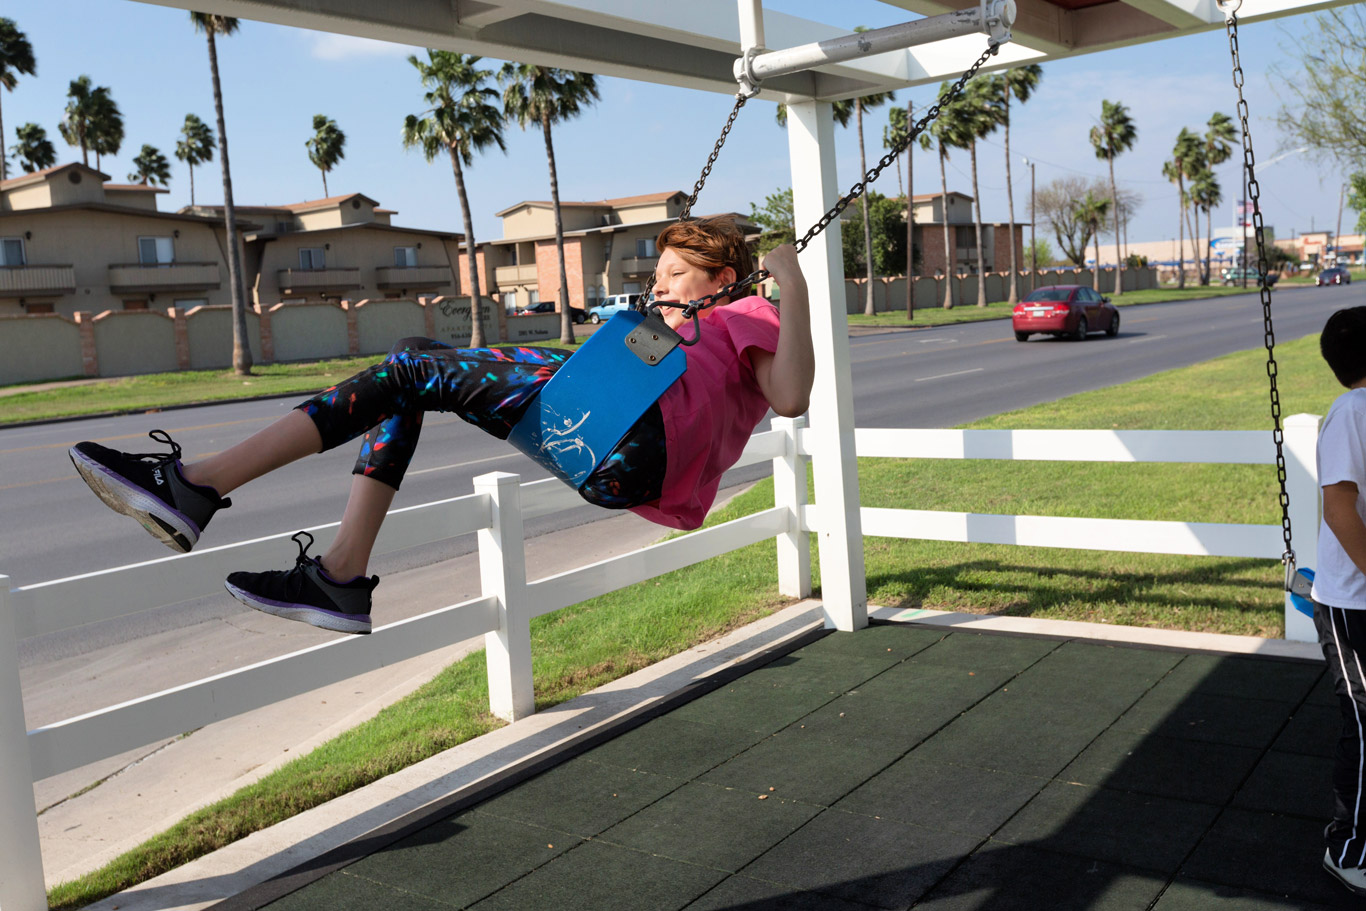 Kid swings at a bus stop that also has a swingset